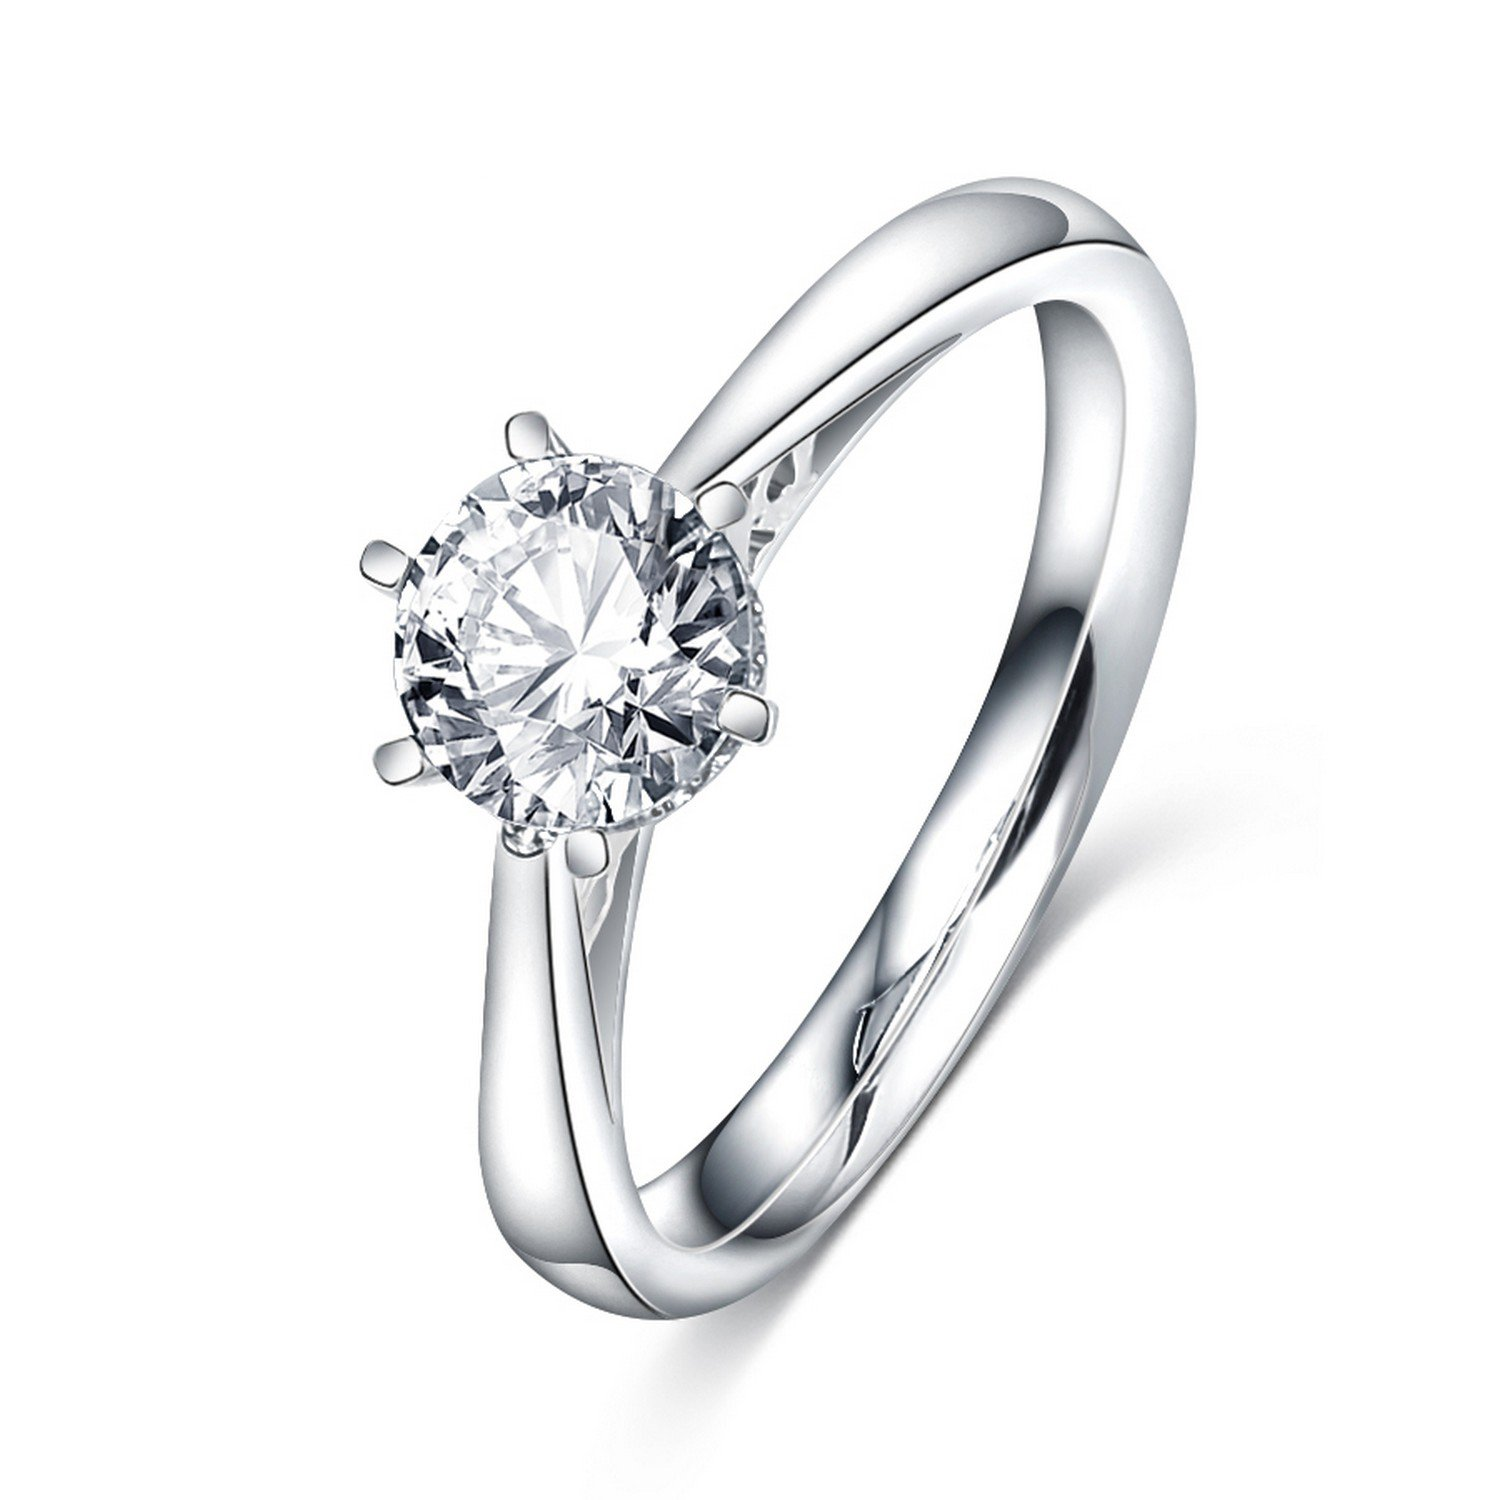 Slyq Jewelry CZ Crystal Vintage Finger RingSilver Color womens engagement rings rings for women fashion